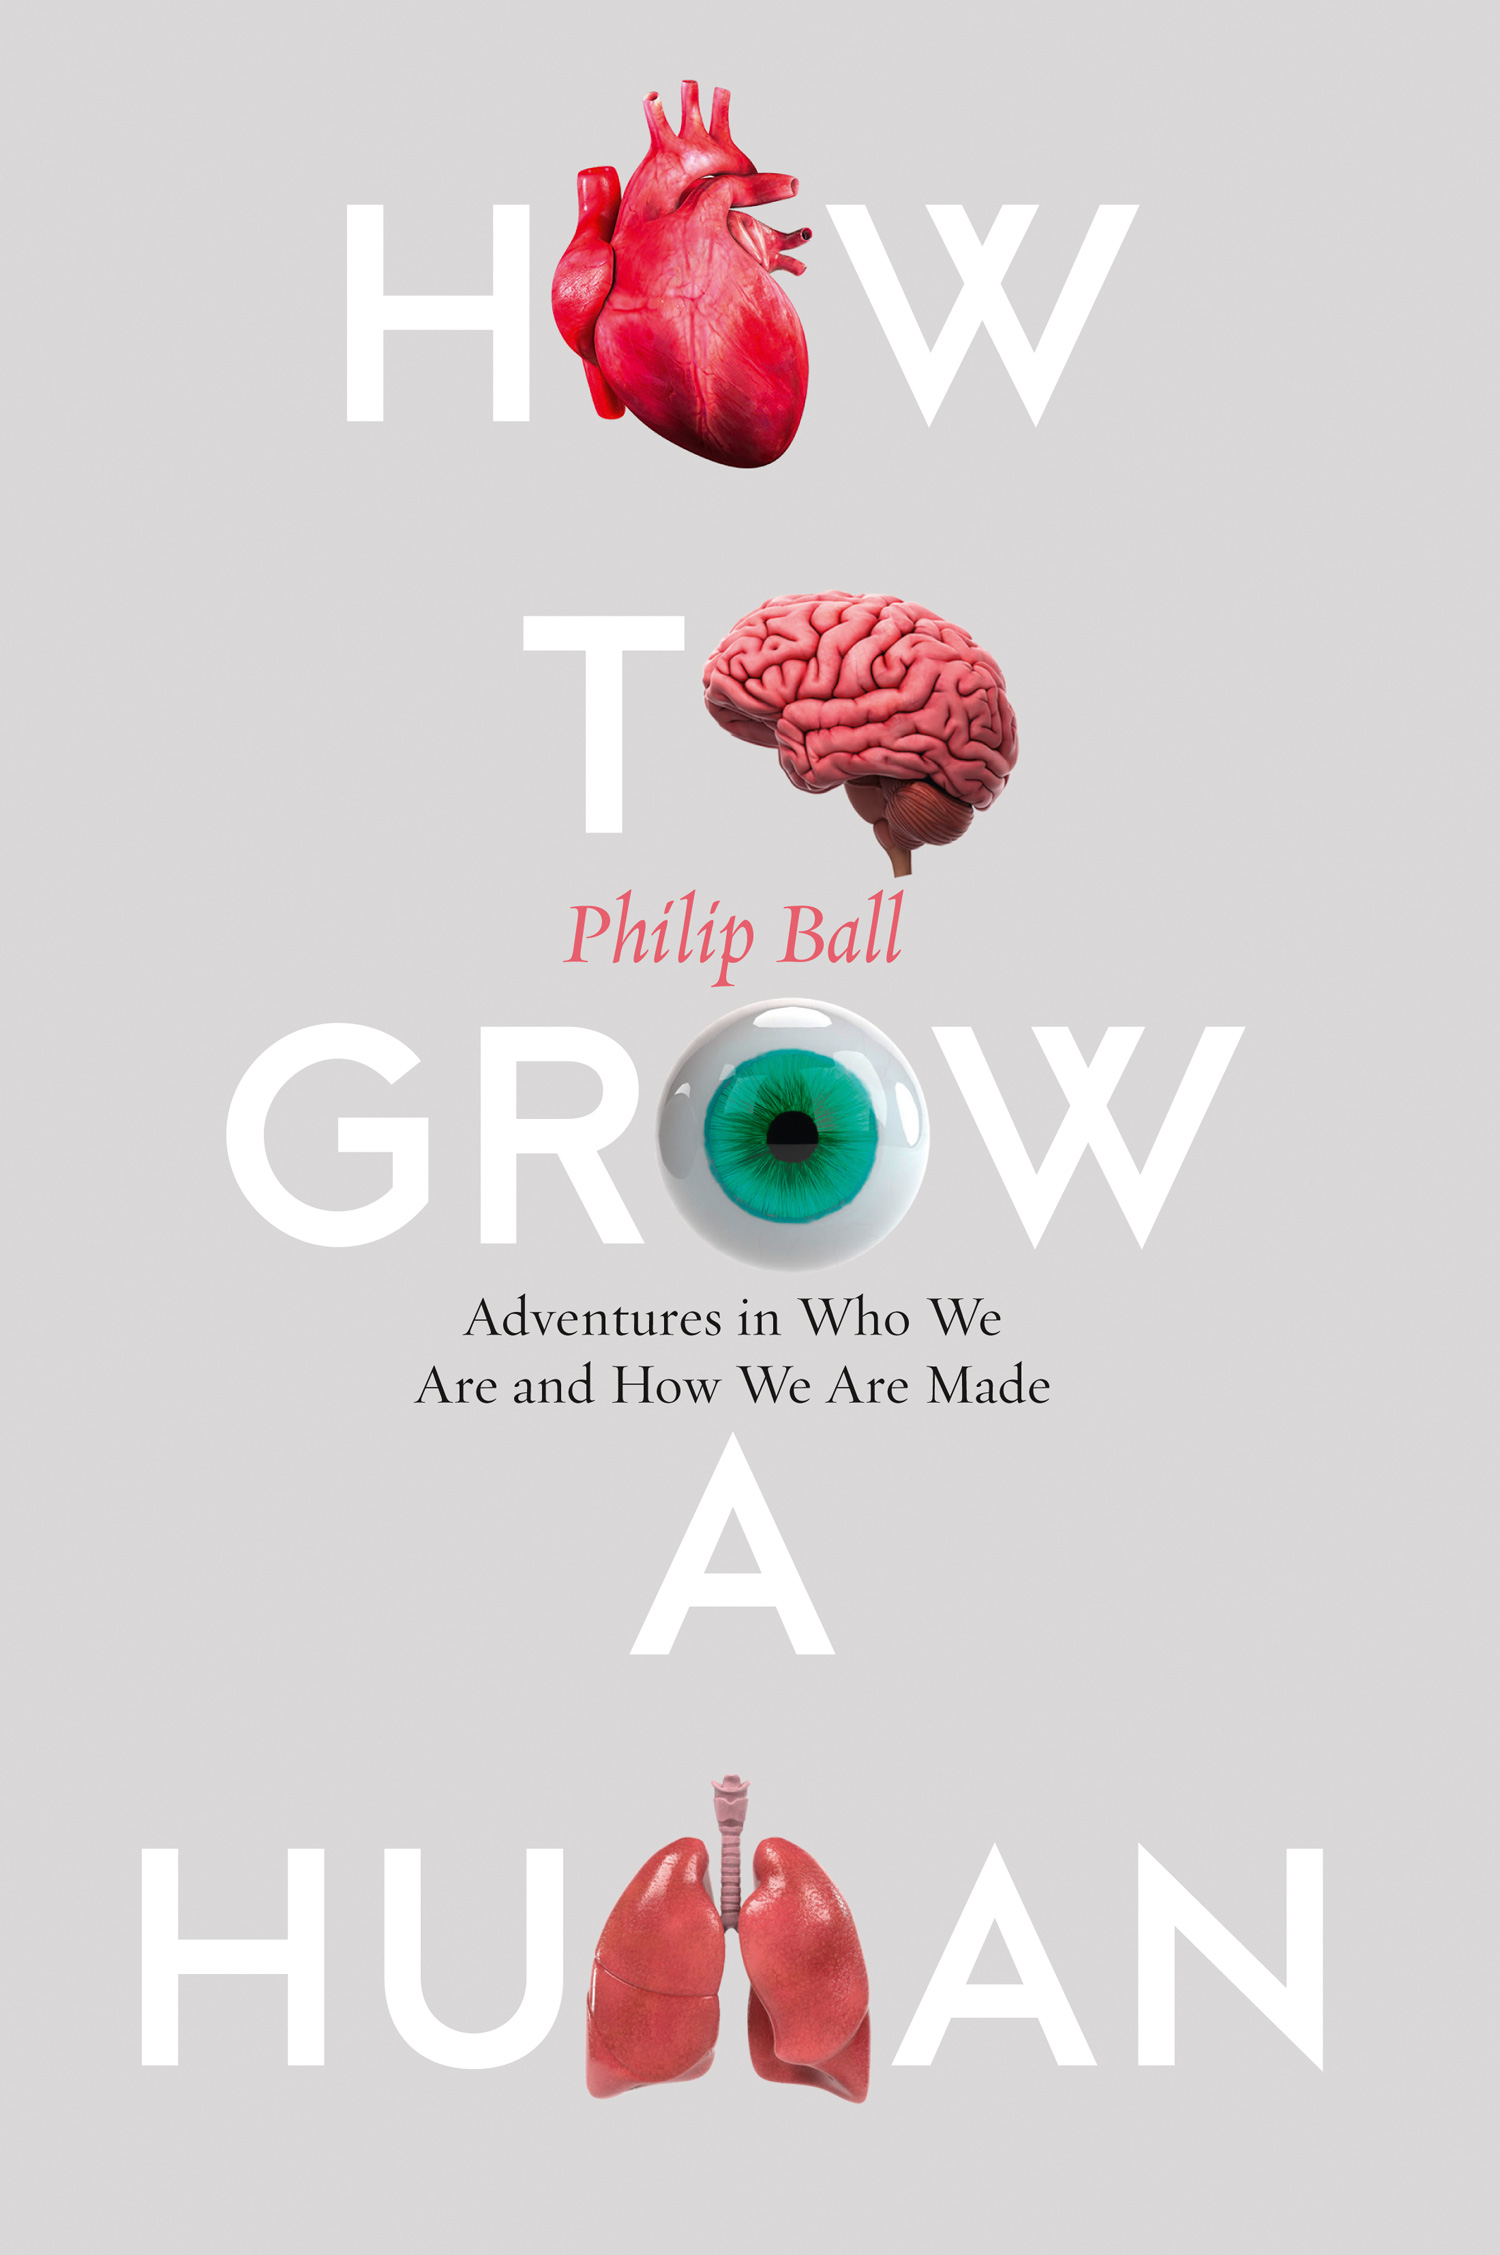 Philip Ball How to Build a Human Adventures in How We Are Made and Who We Are